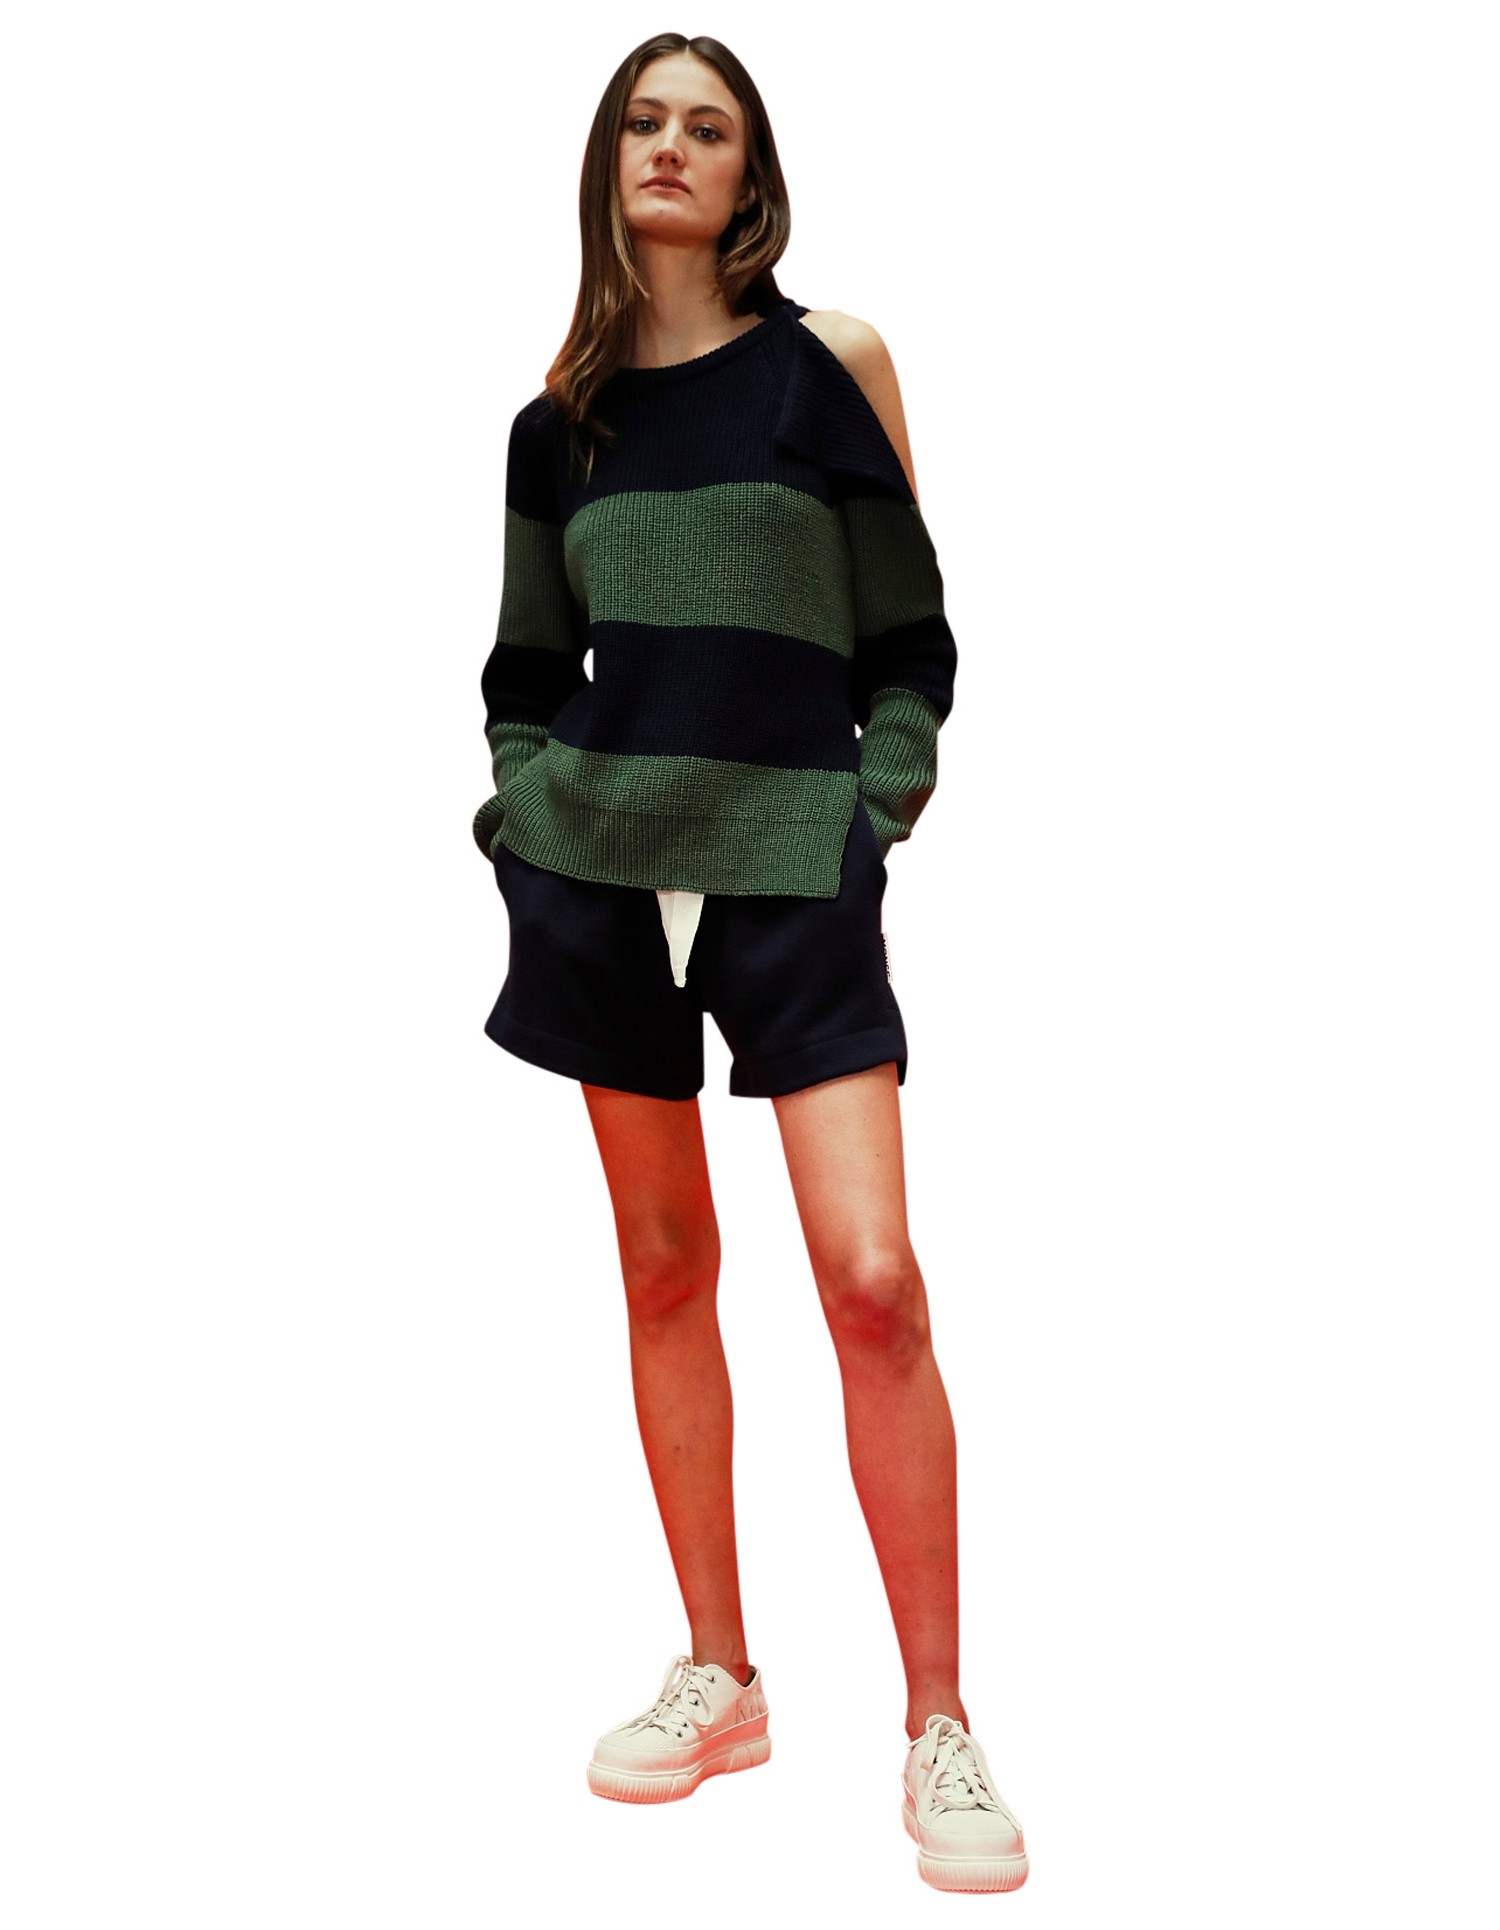 MONSE Stripe Buckle Shoulder Sweater in Midnight and Olive on Model No Background Front